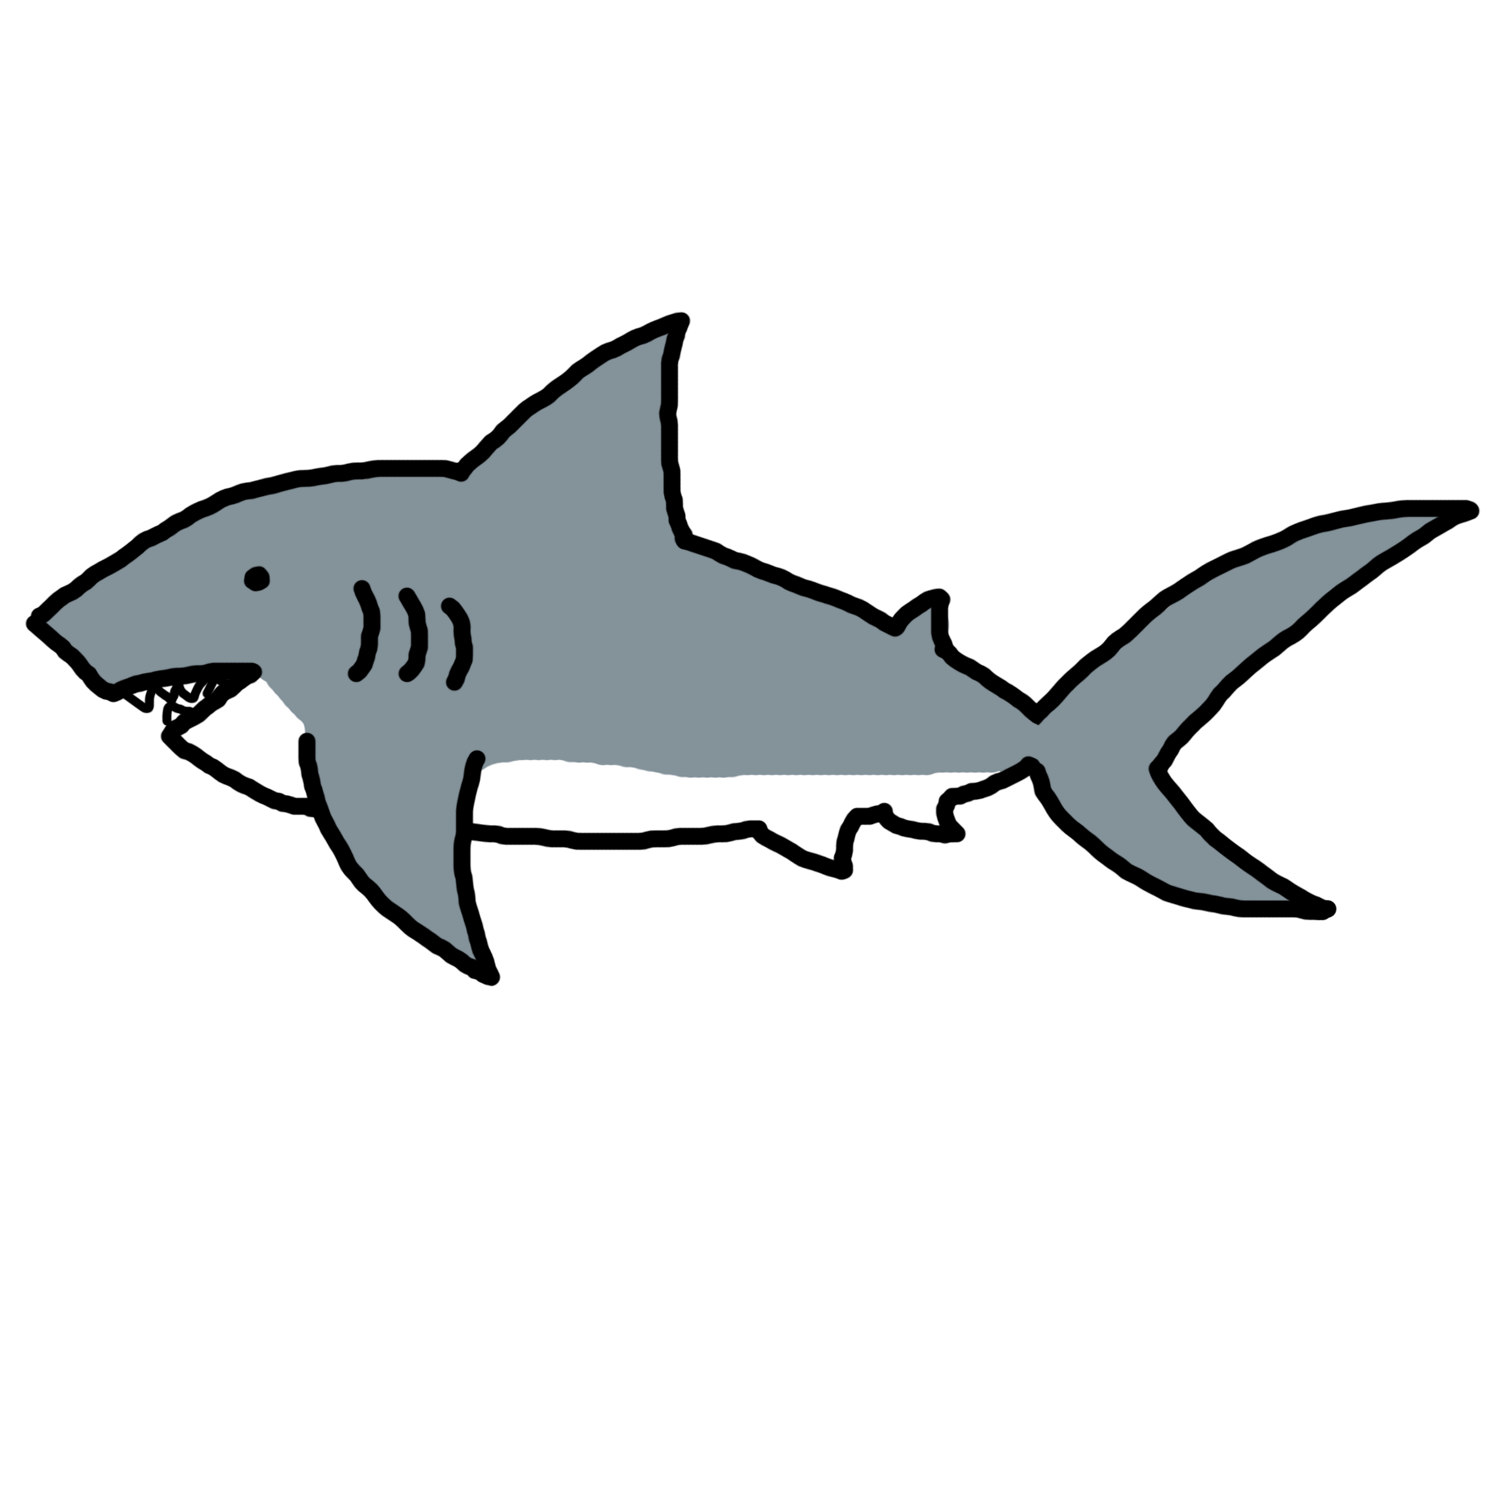 Free Free Shark Cliparts, Download Free Clip Art, Free Clip.